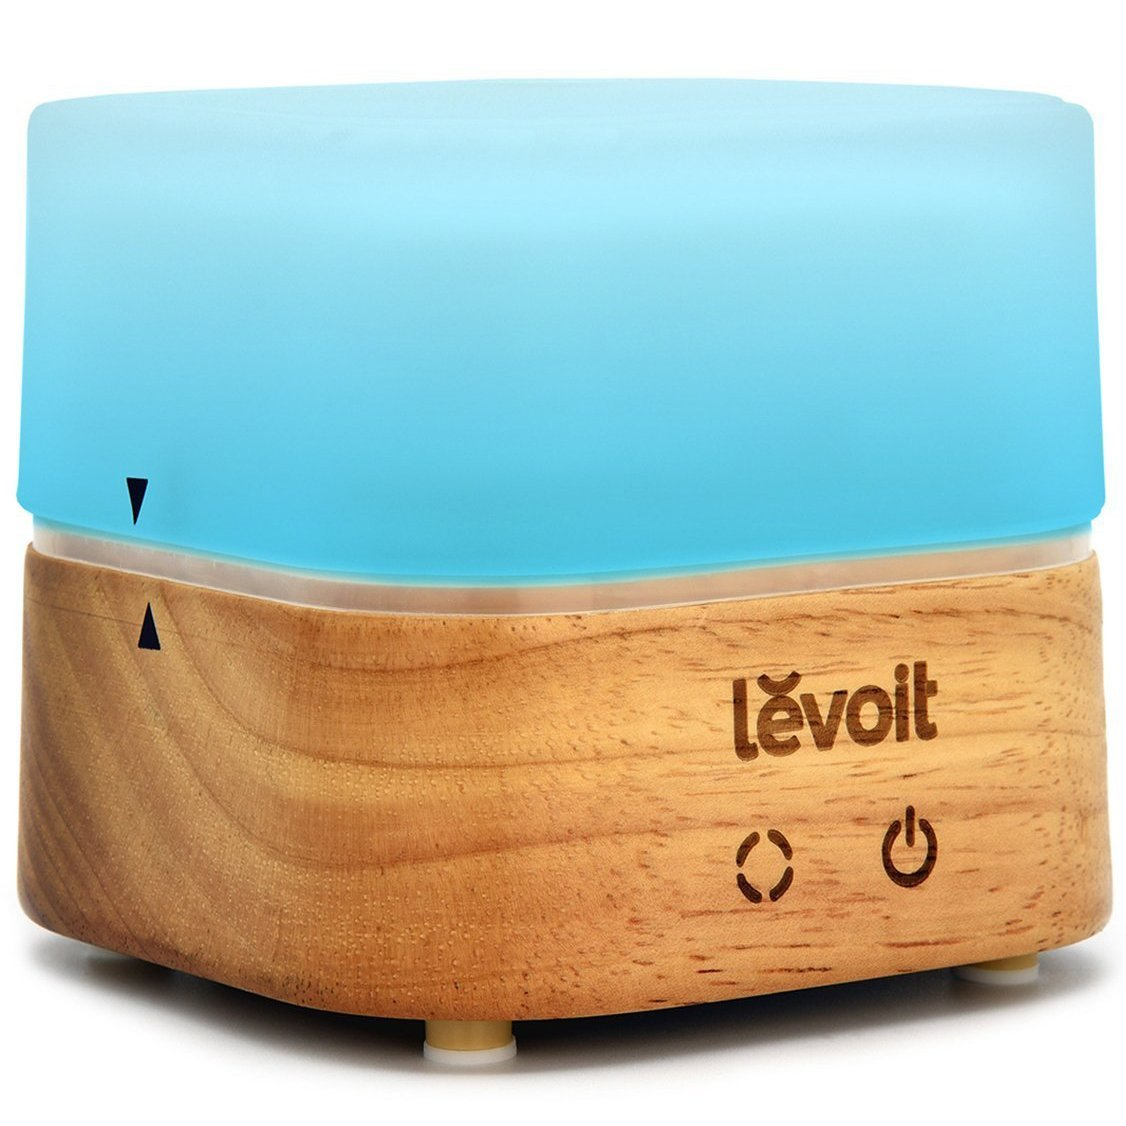 Bedroom Humidifiers Our Review Of Levoit Essential Oil Diffuser Humidifier